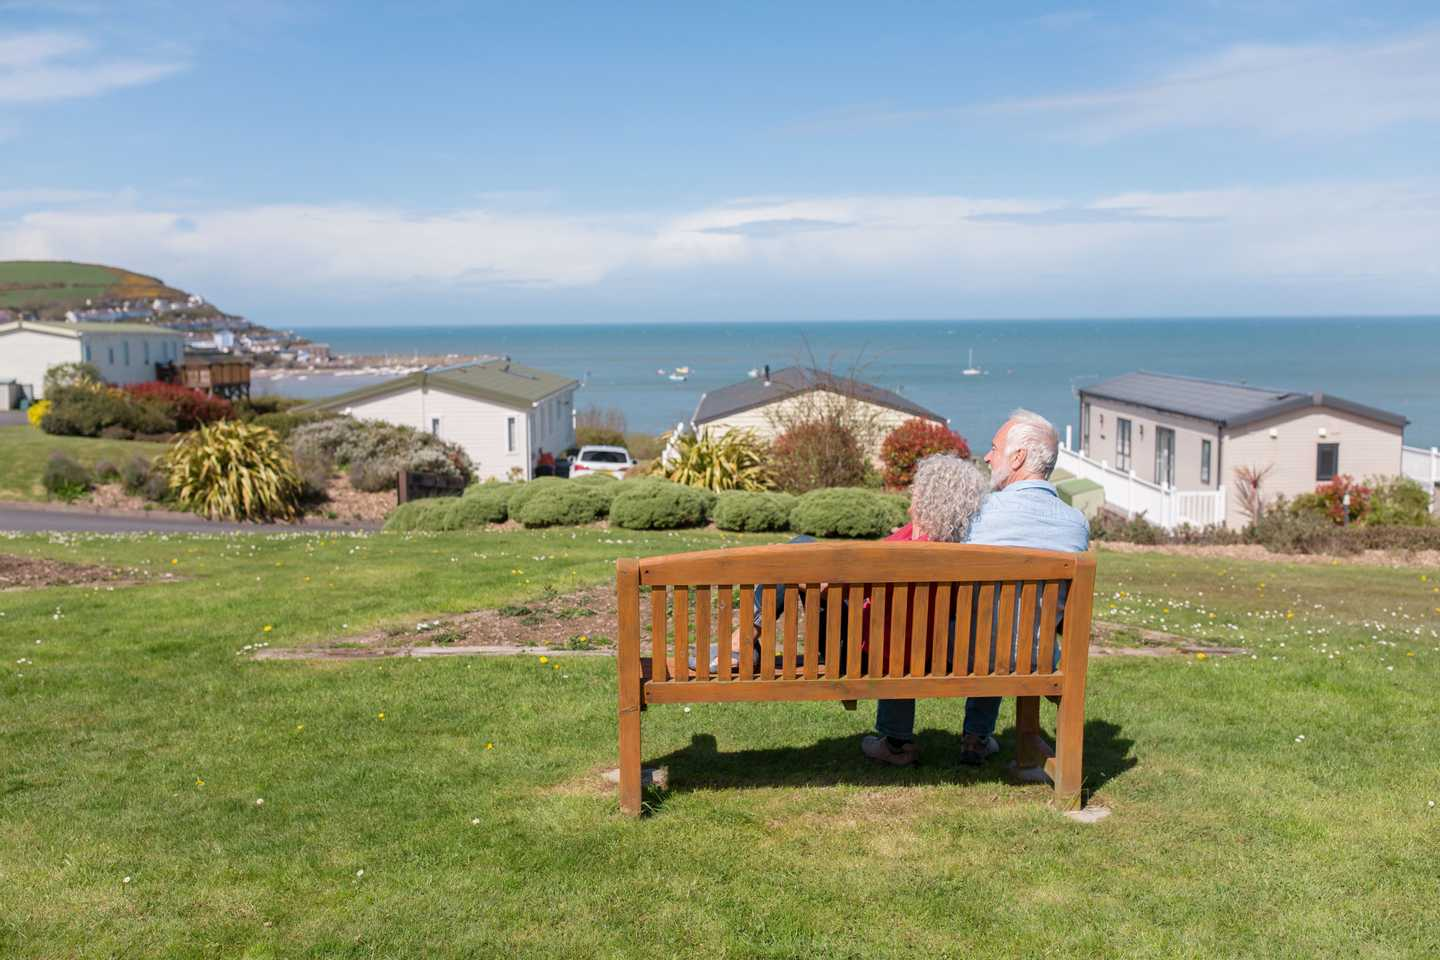 Owners sitting on a bench overlooking the sea at Quay West